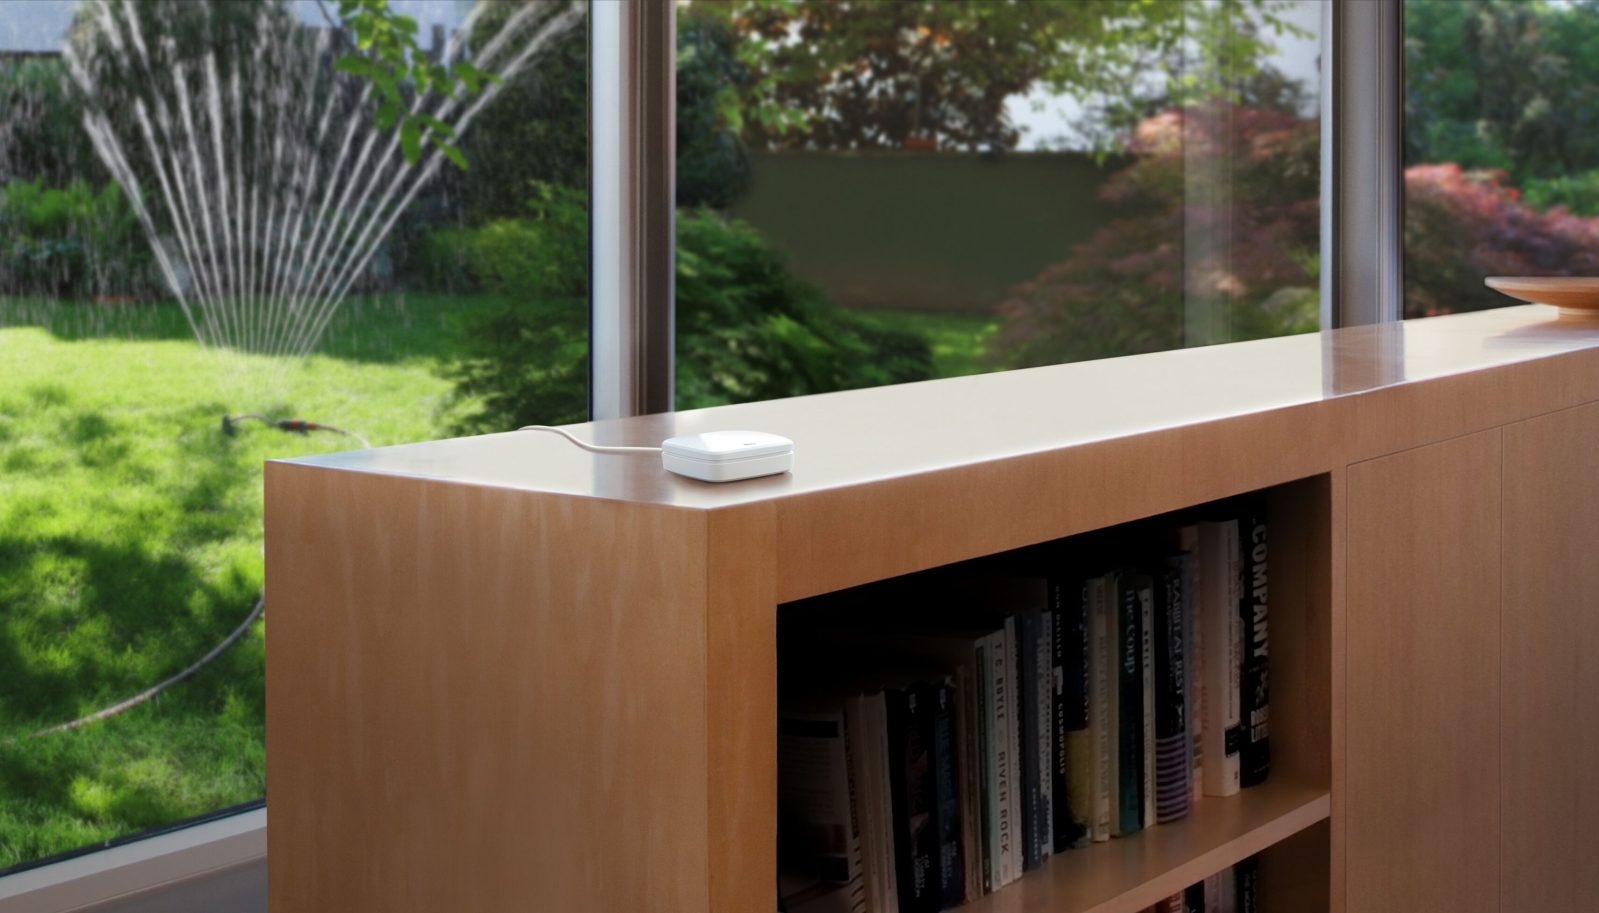 Eve 'Extend' Bluetooth range booster for HomeKit has a price and pre-order date after two years